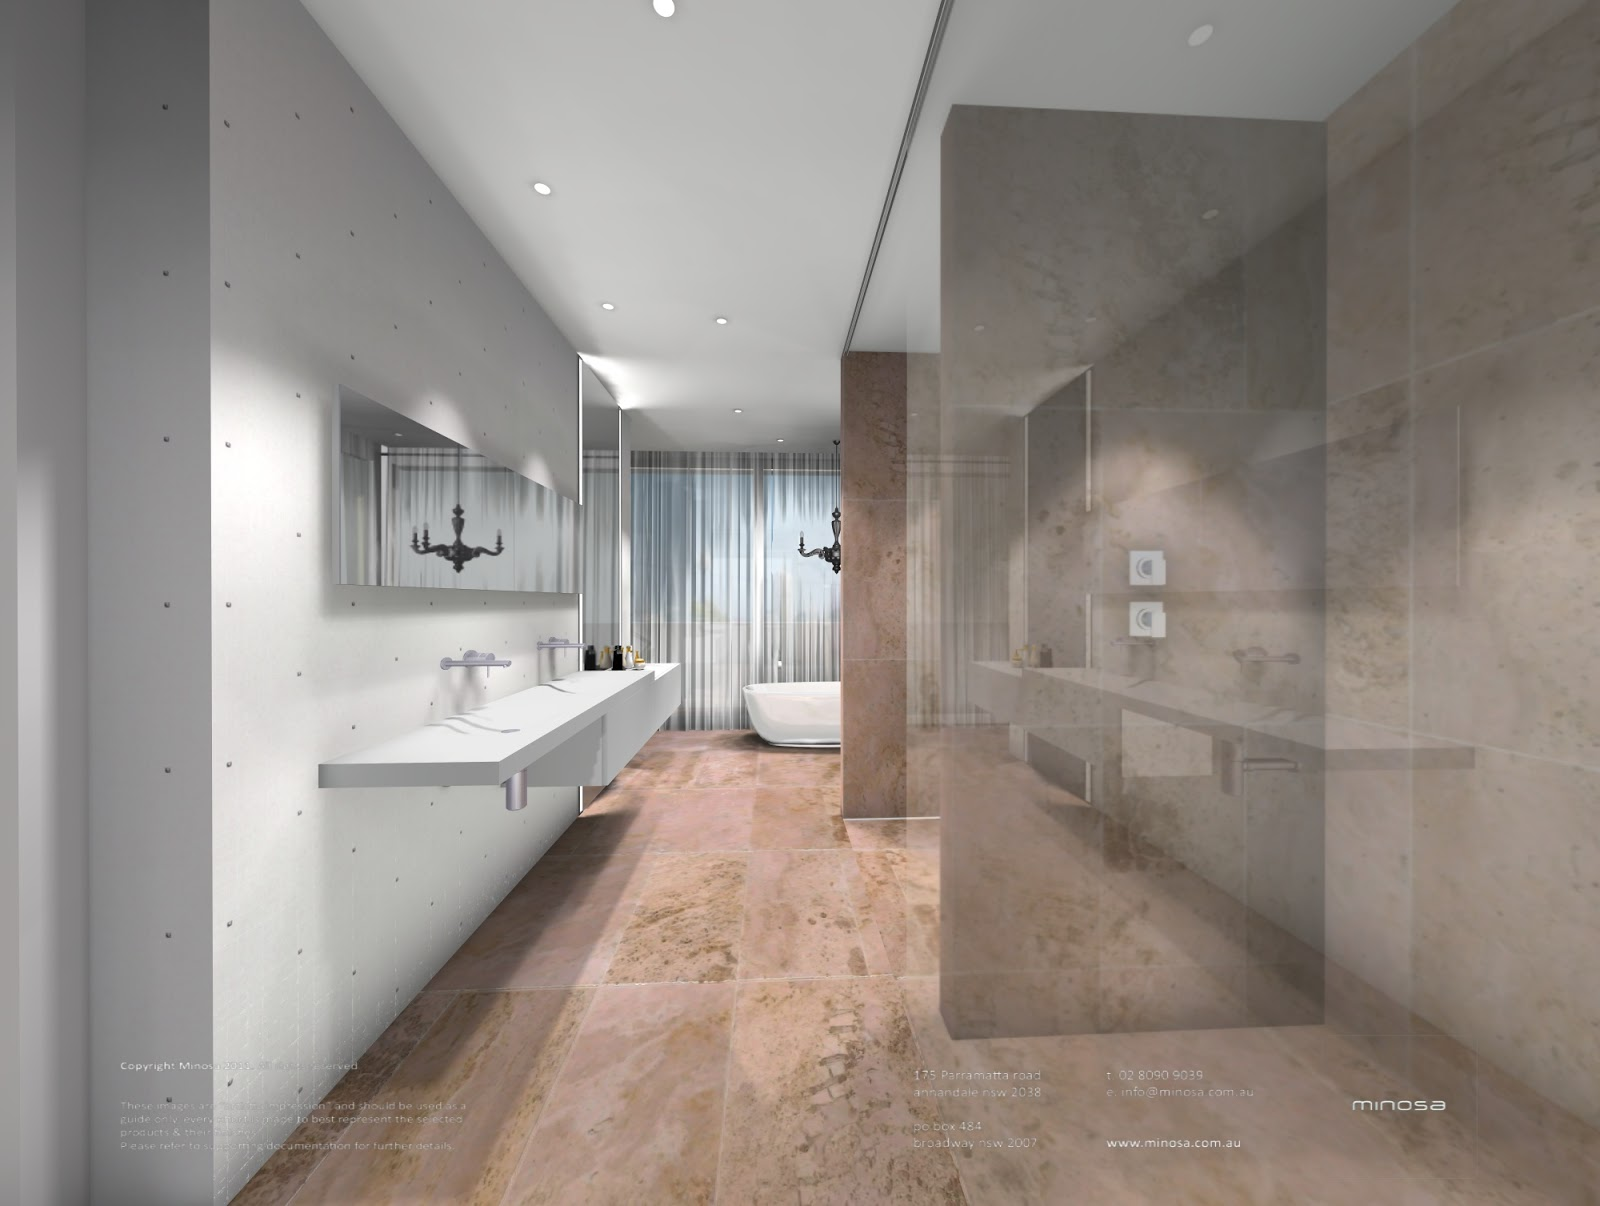 Minosa new minosa bathroom design resort style ensuite for Ensuite bathroom designs